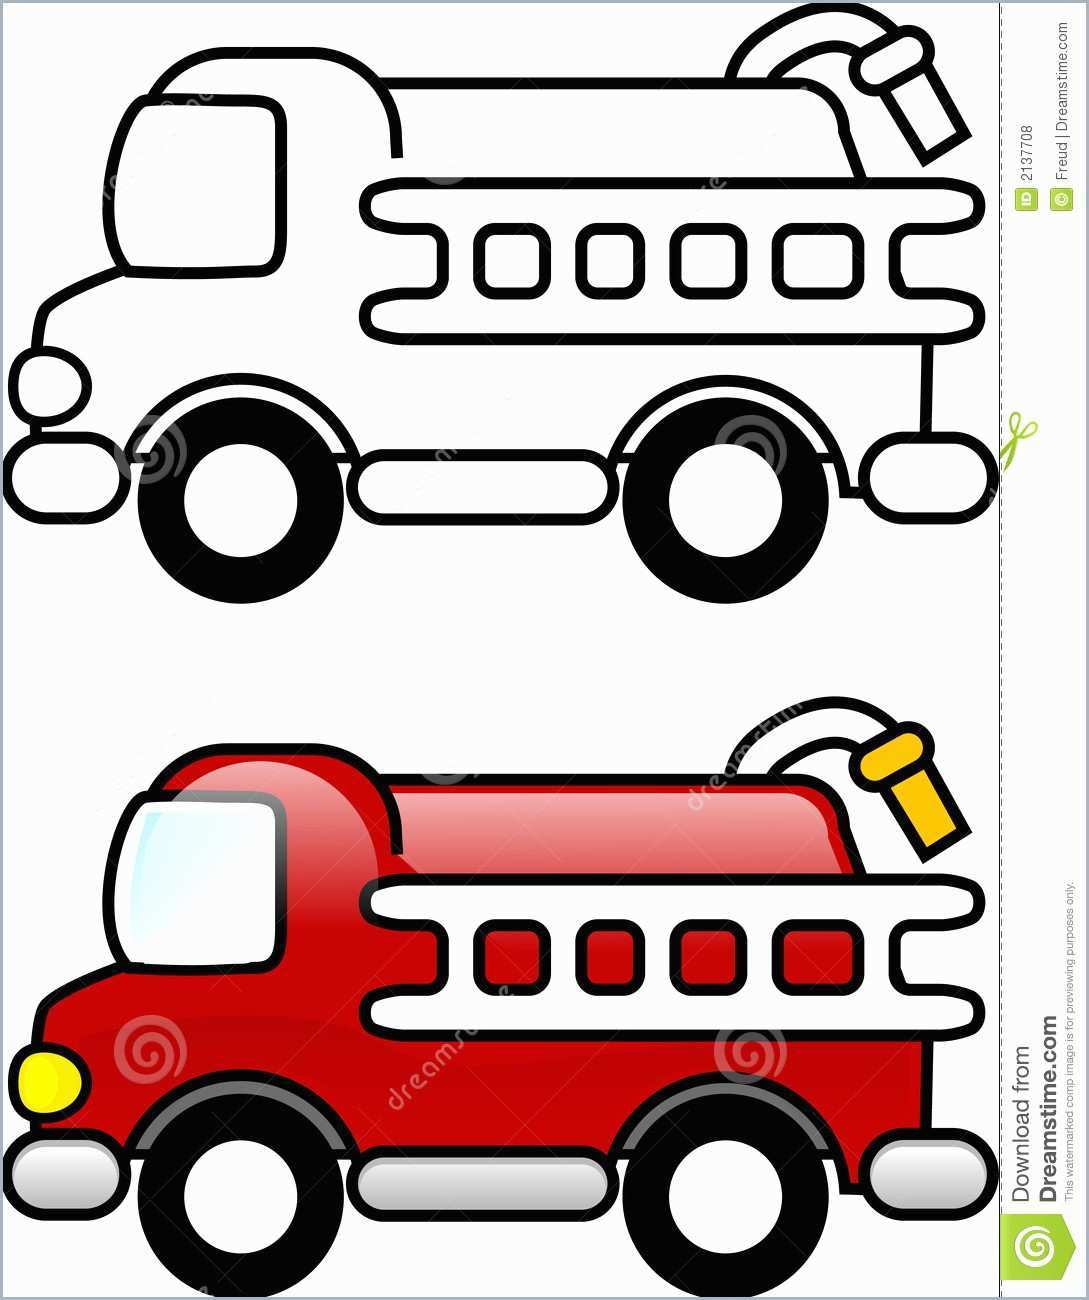 Firetruck Clipart Draw Firetruck Draw Transparent Free For Download On Webstockreview 2021